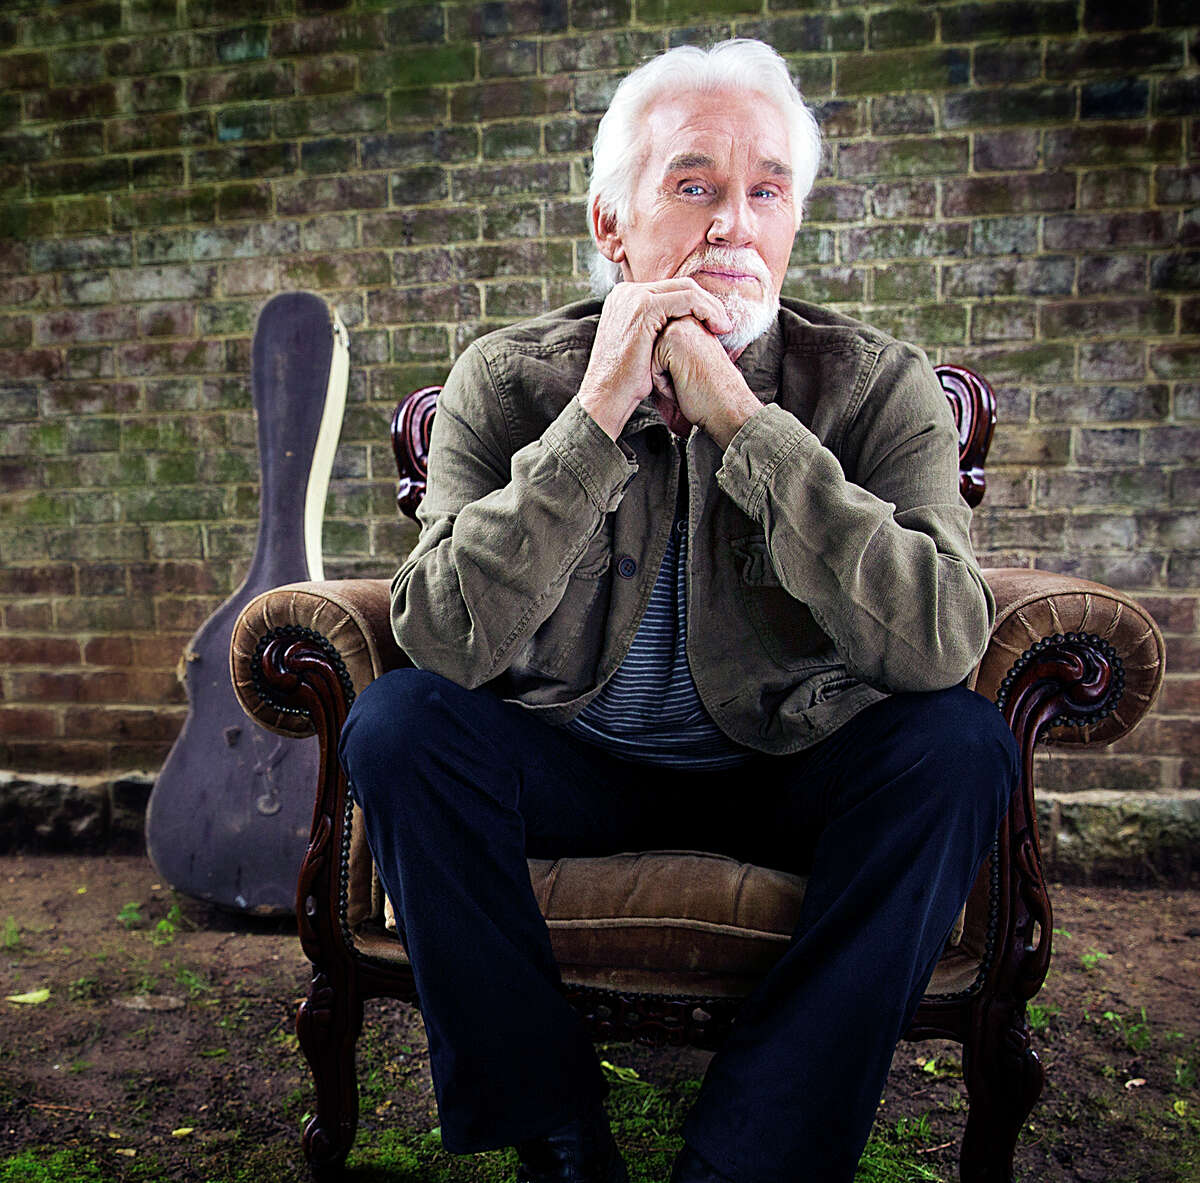 Kenny Rogers headlines the 2016 Ridgefield Playhouse Fall Gala on Saturday, Sept. 17.